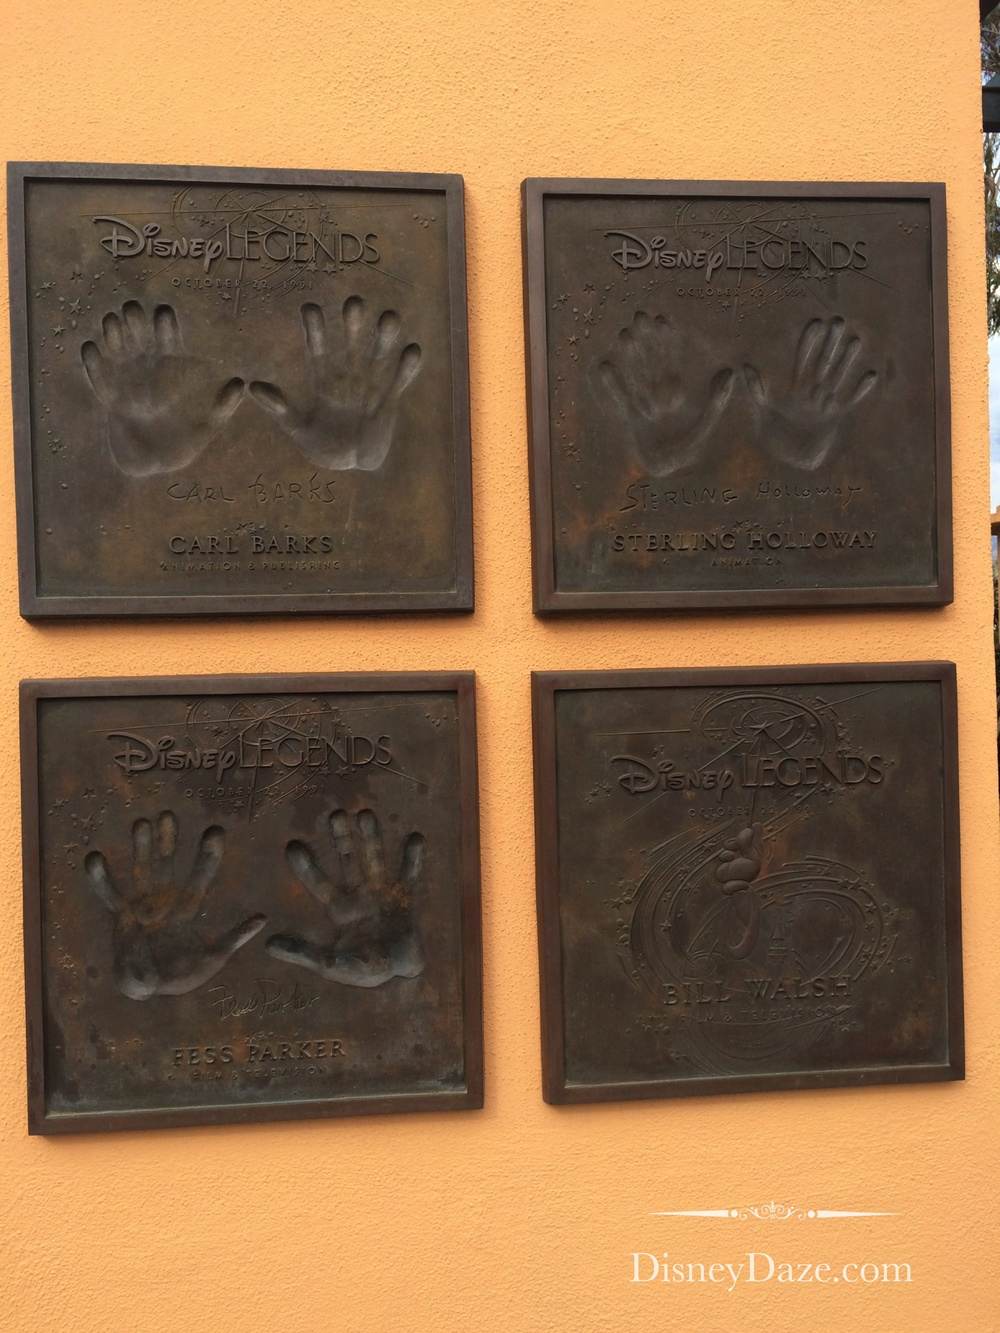 No handprints = awarded posthumously